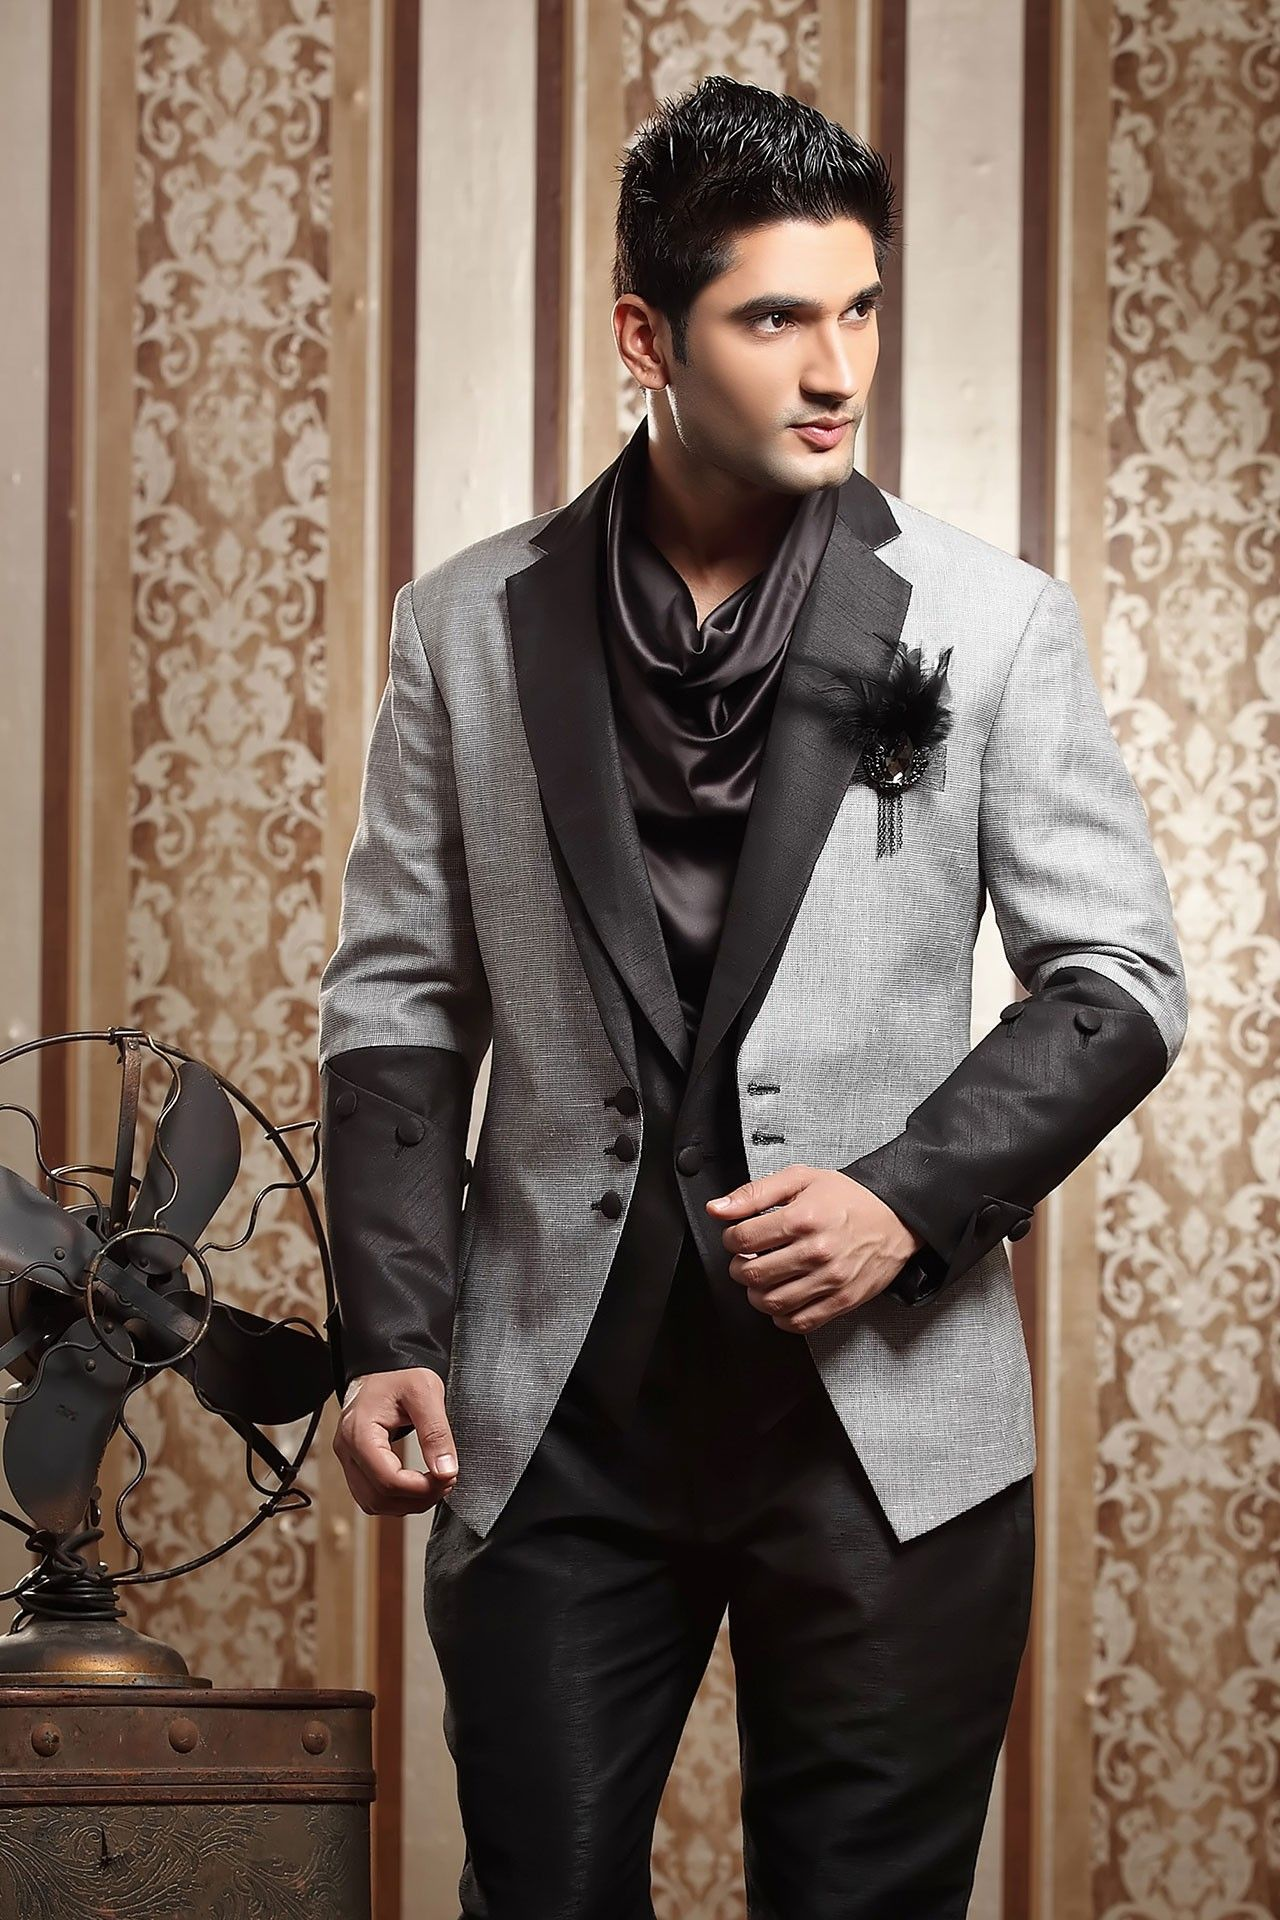 Buy designer suits for men online to look stylish ...